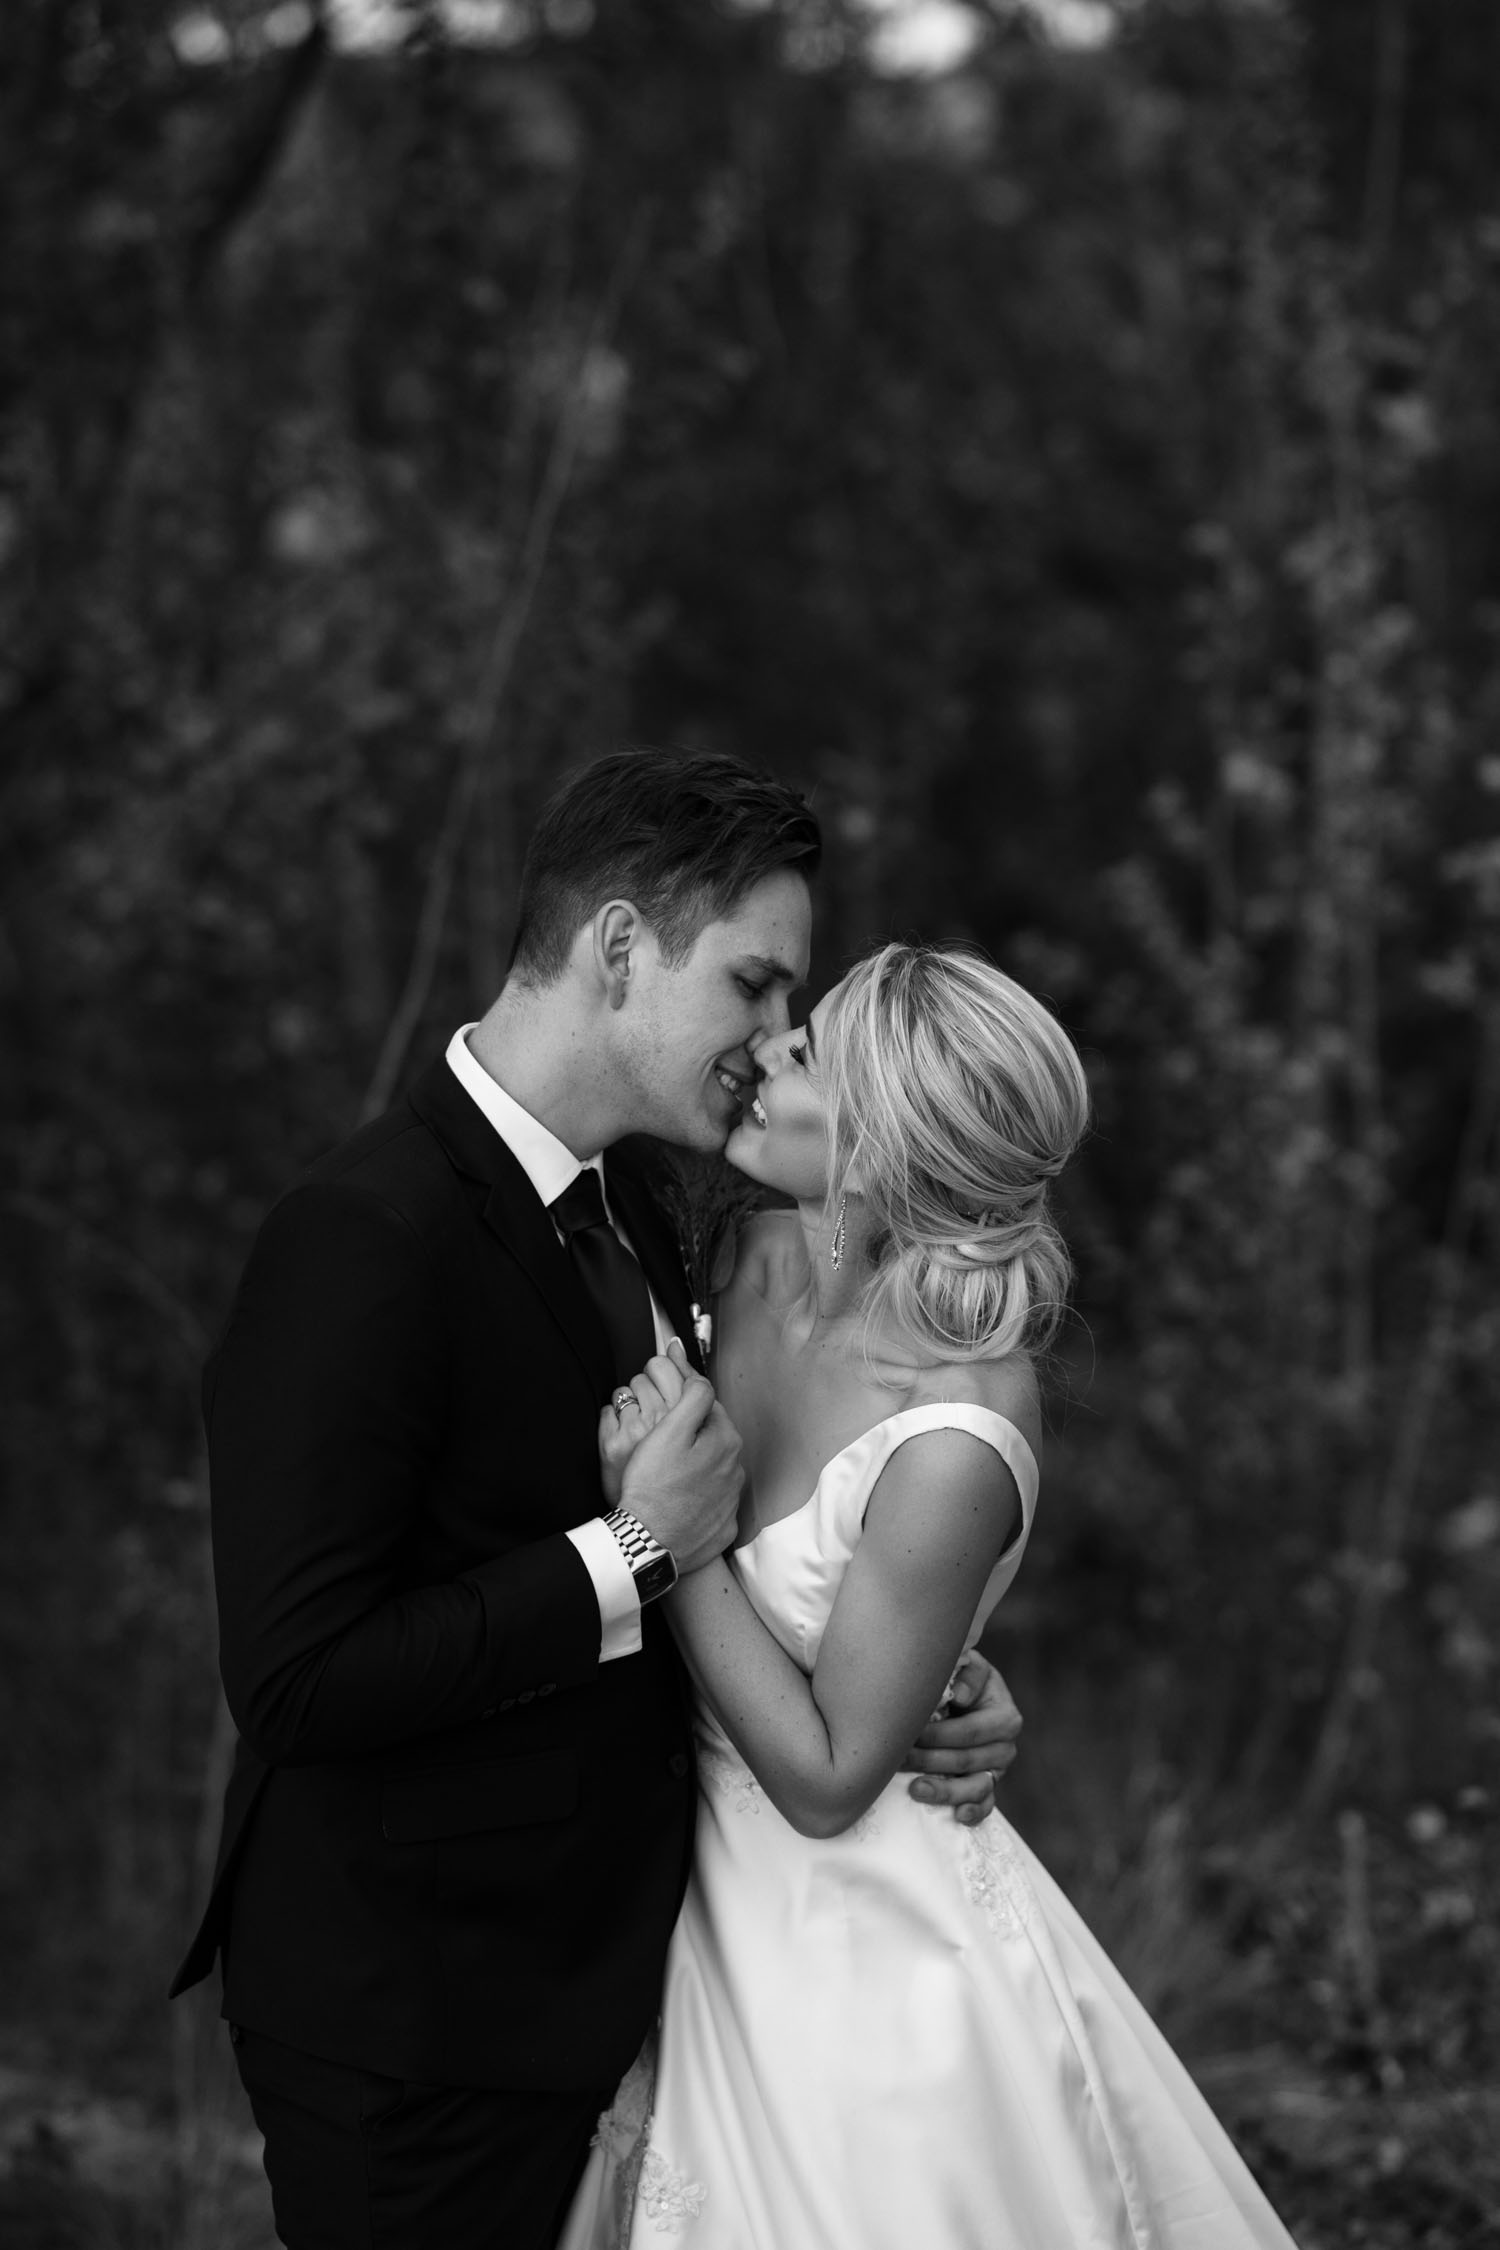 Candid Black And White Wedding Photo Of Bride And Groom Kiss And Hold Hands